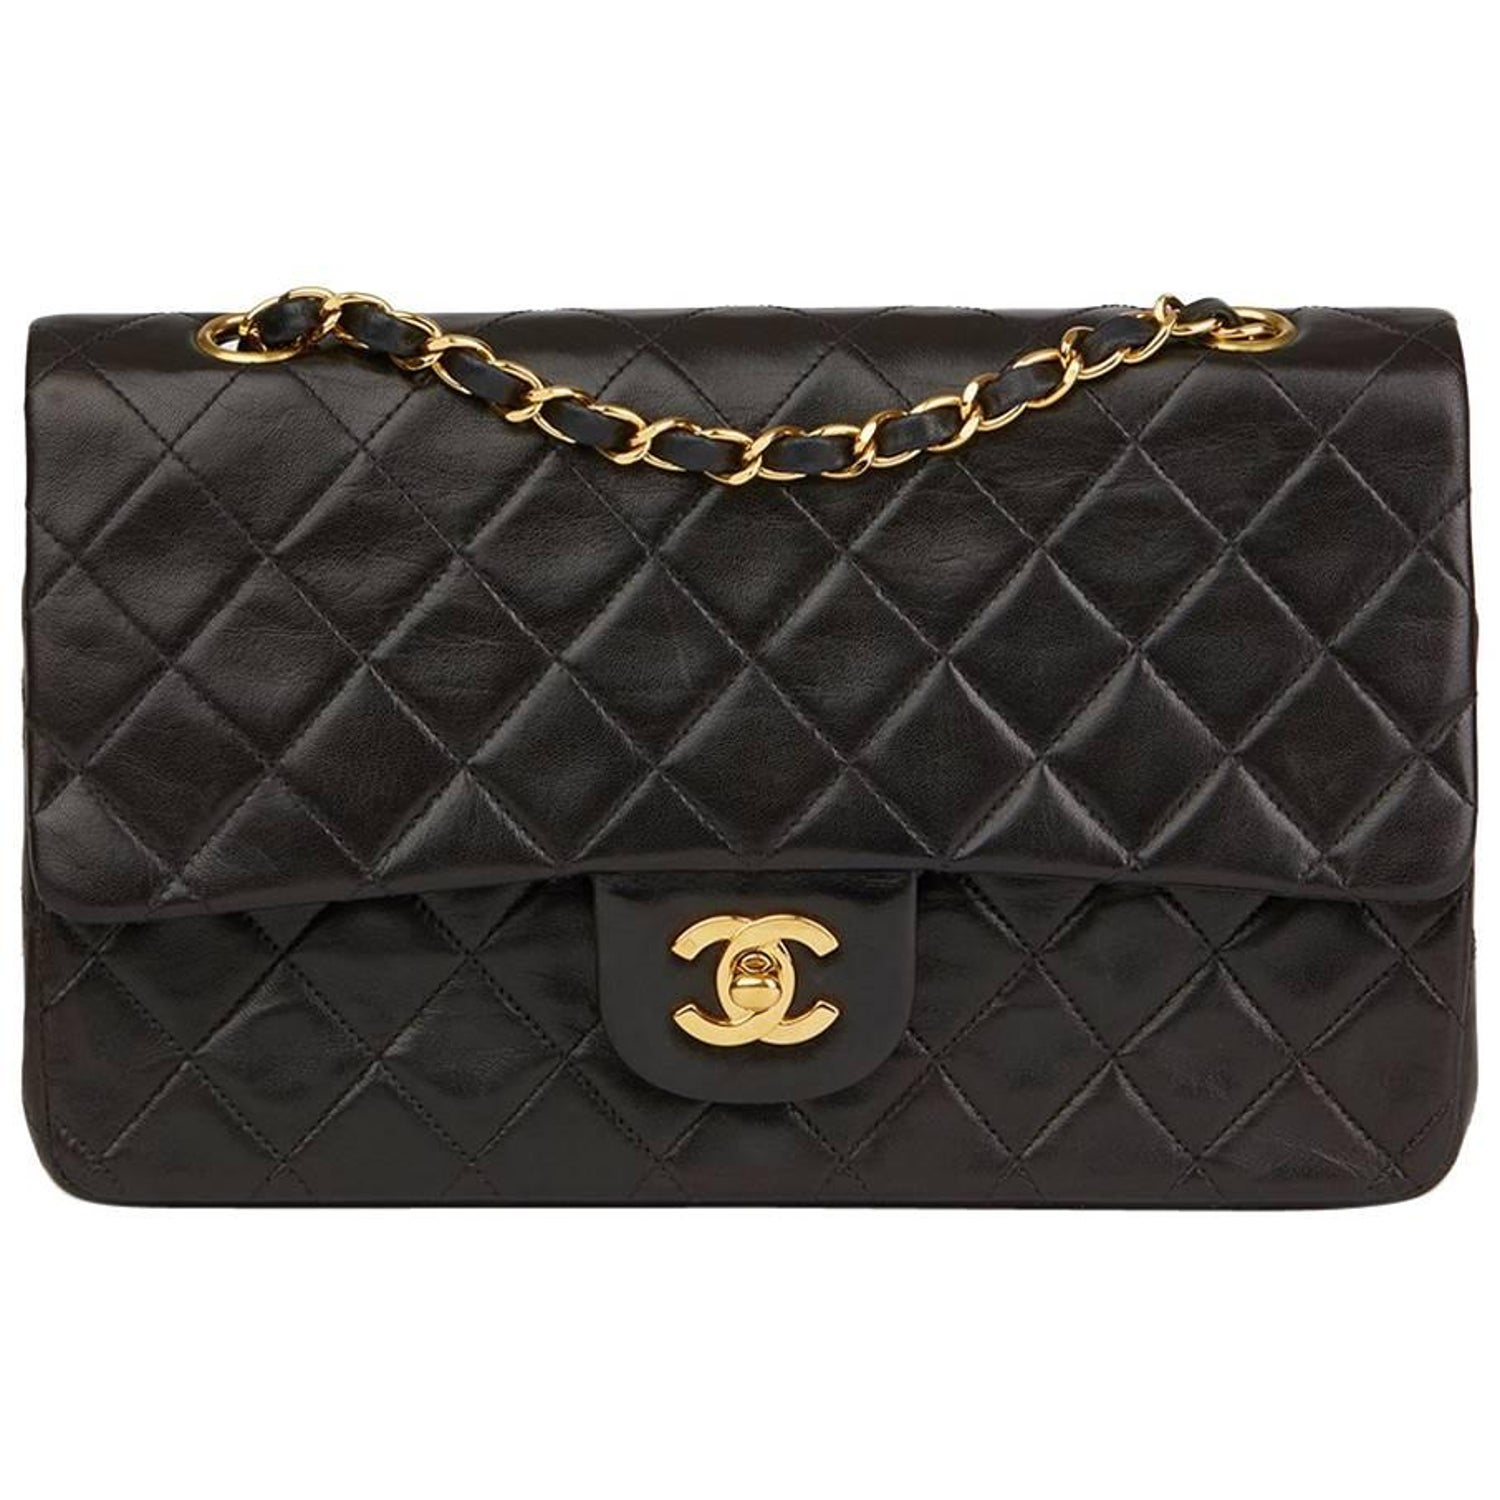 1997 Chanel Black Quilted Lambskin Vintage Small Classic Double Flap Bag at  1stdibs e7895b6cec6bf